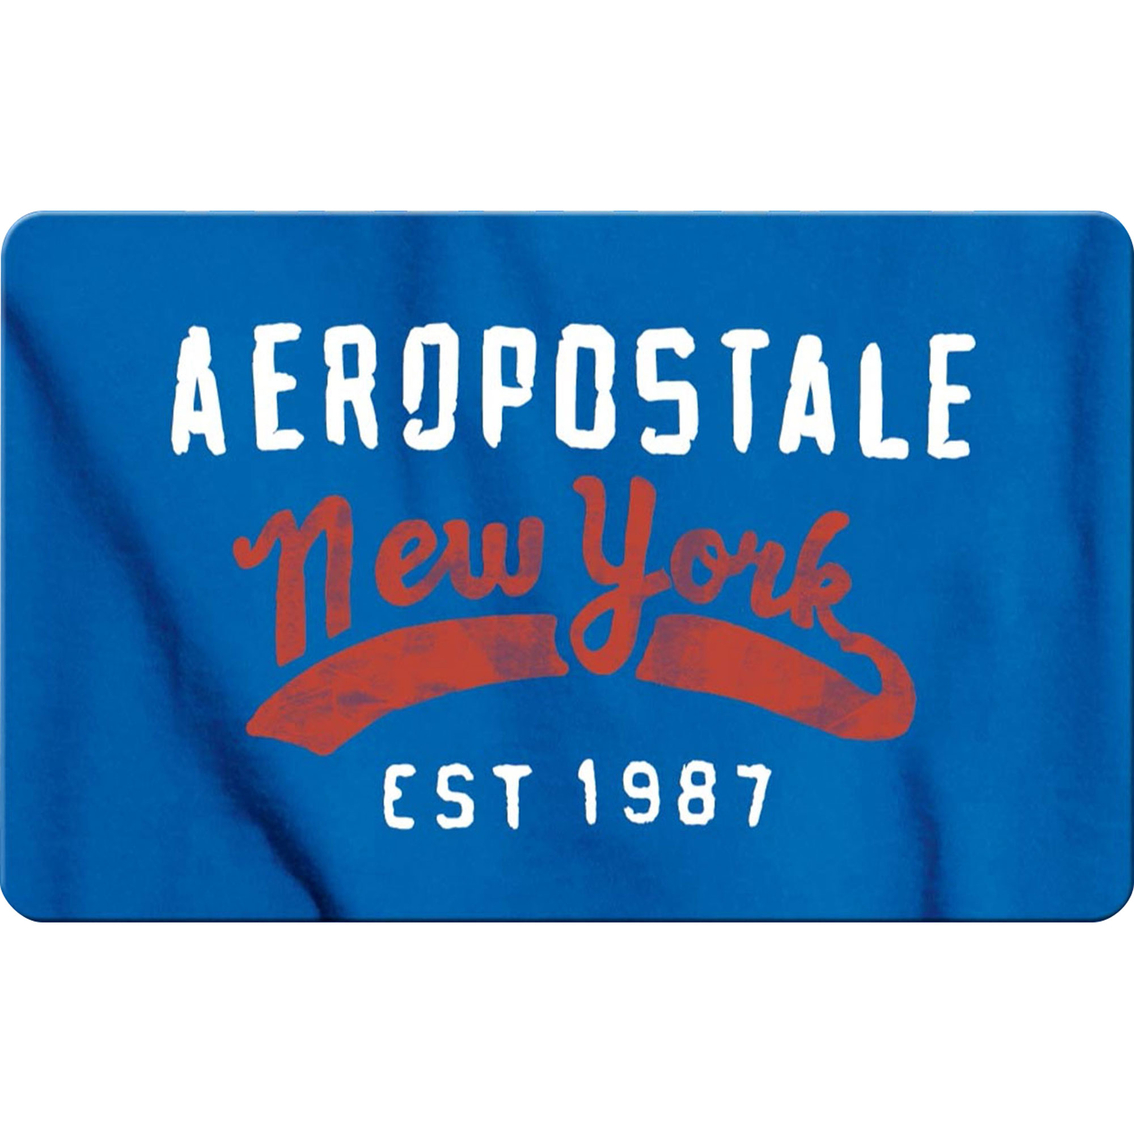 Aeropostale Gift Card | Shoes & Apparel | Gifts & Food | Shop The ...